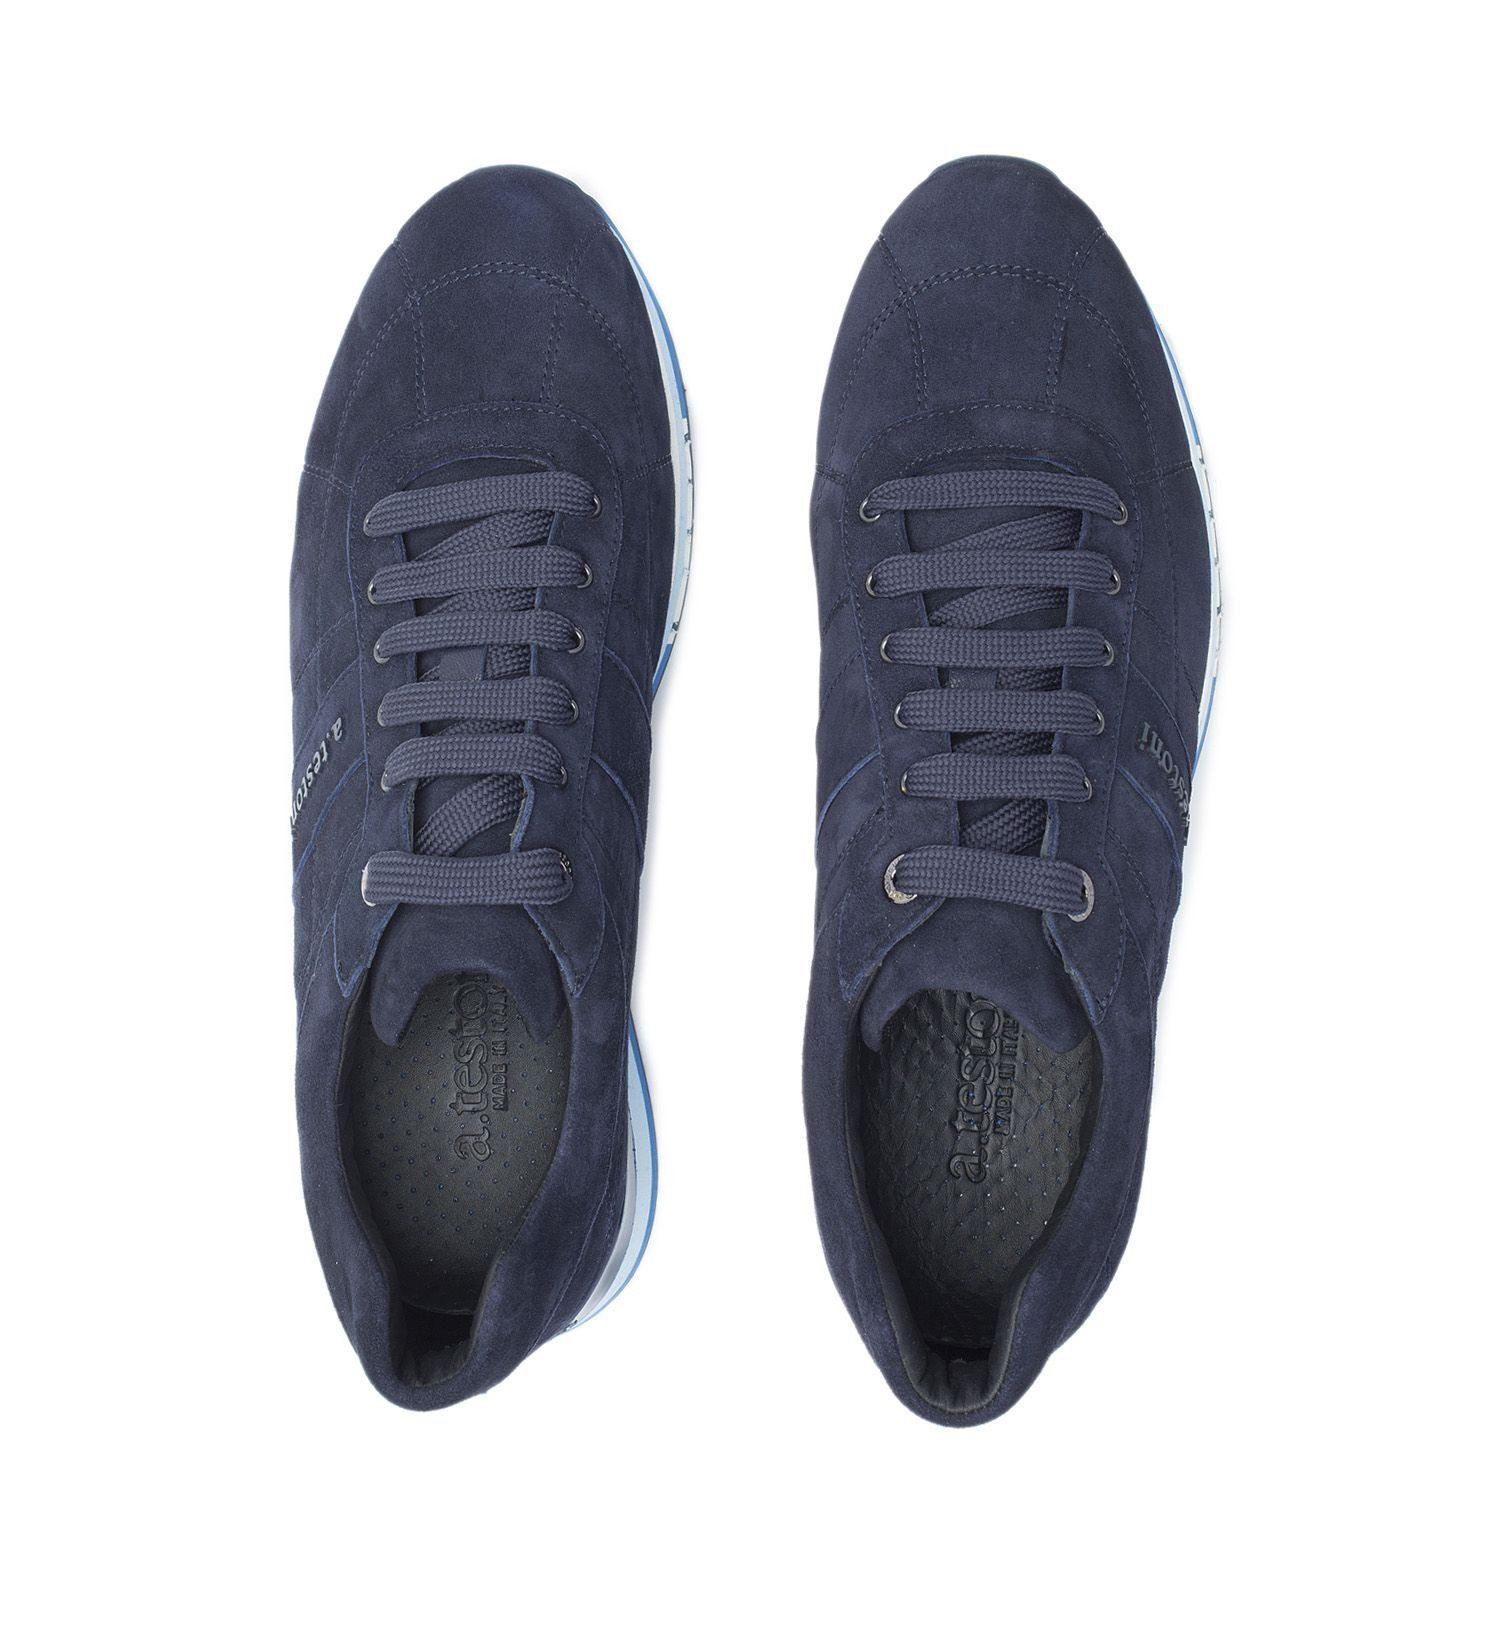 SNEAKER IN SUEDE,SHOES,A.TESTONI, | GentRow.com